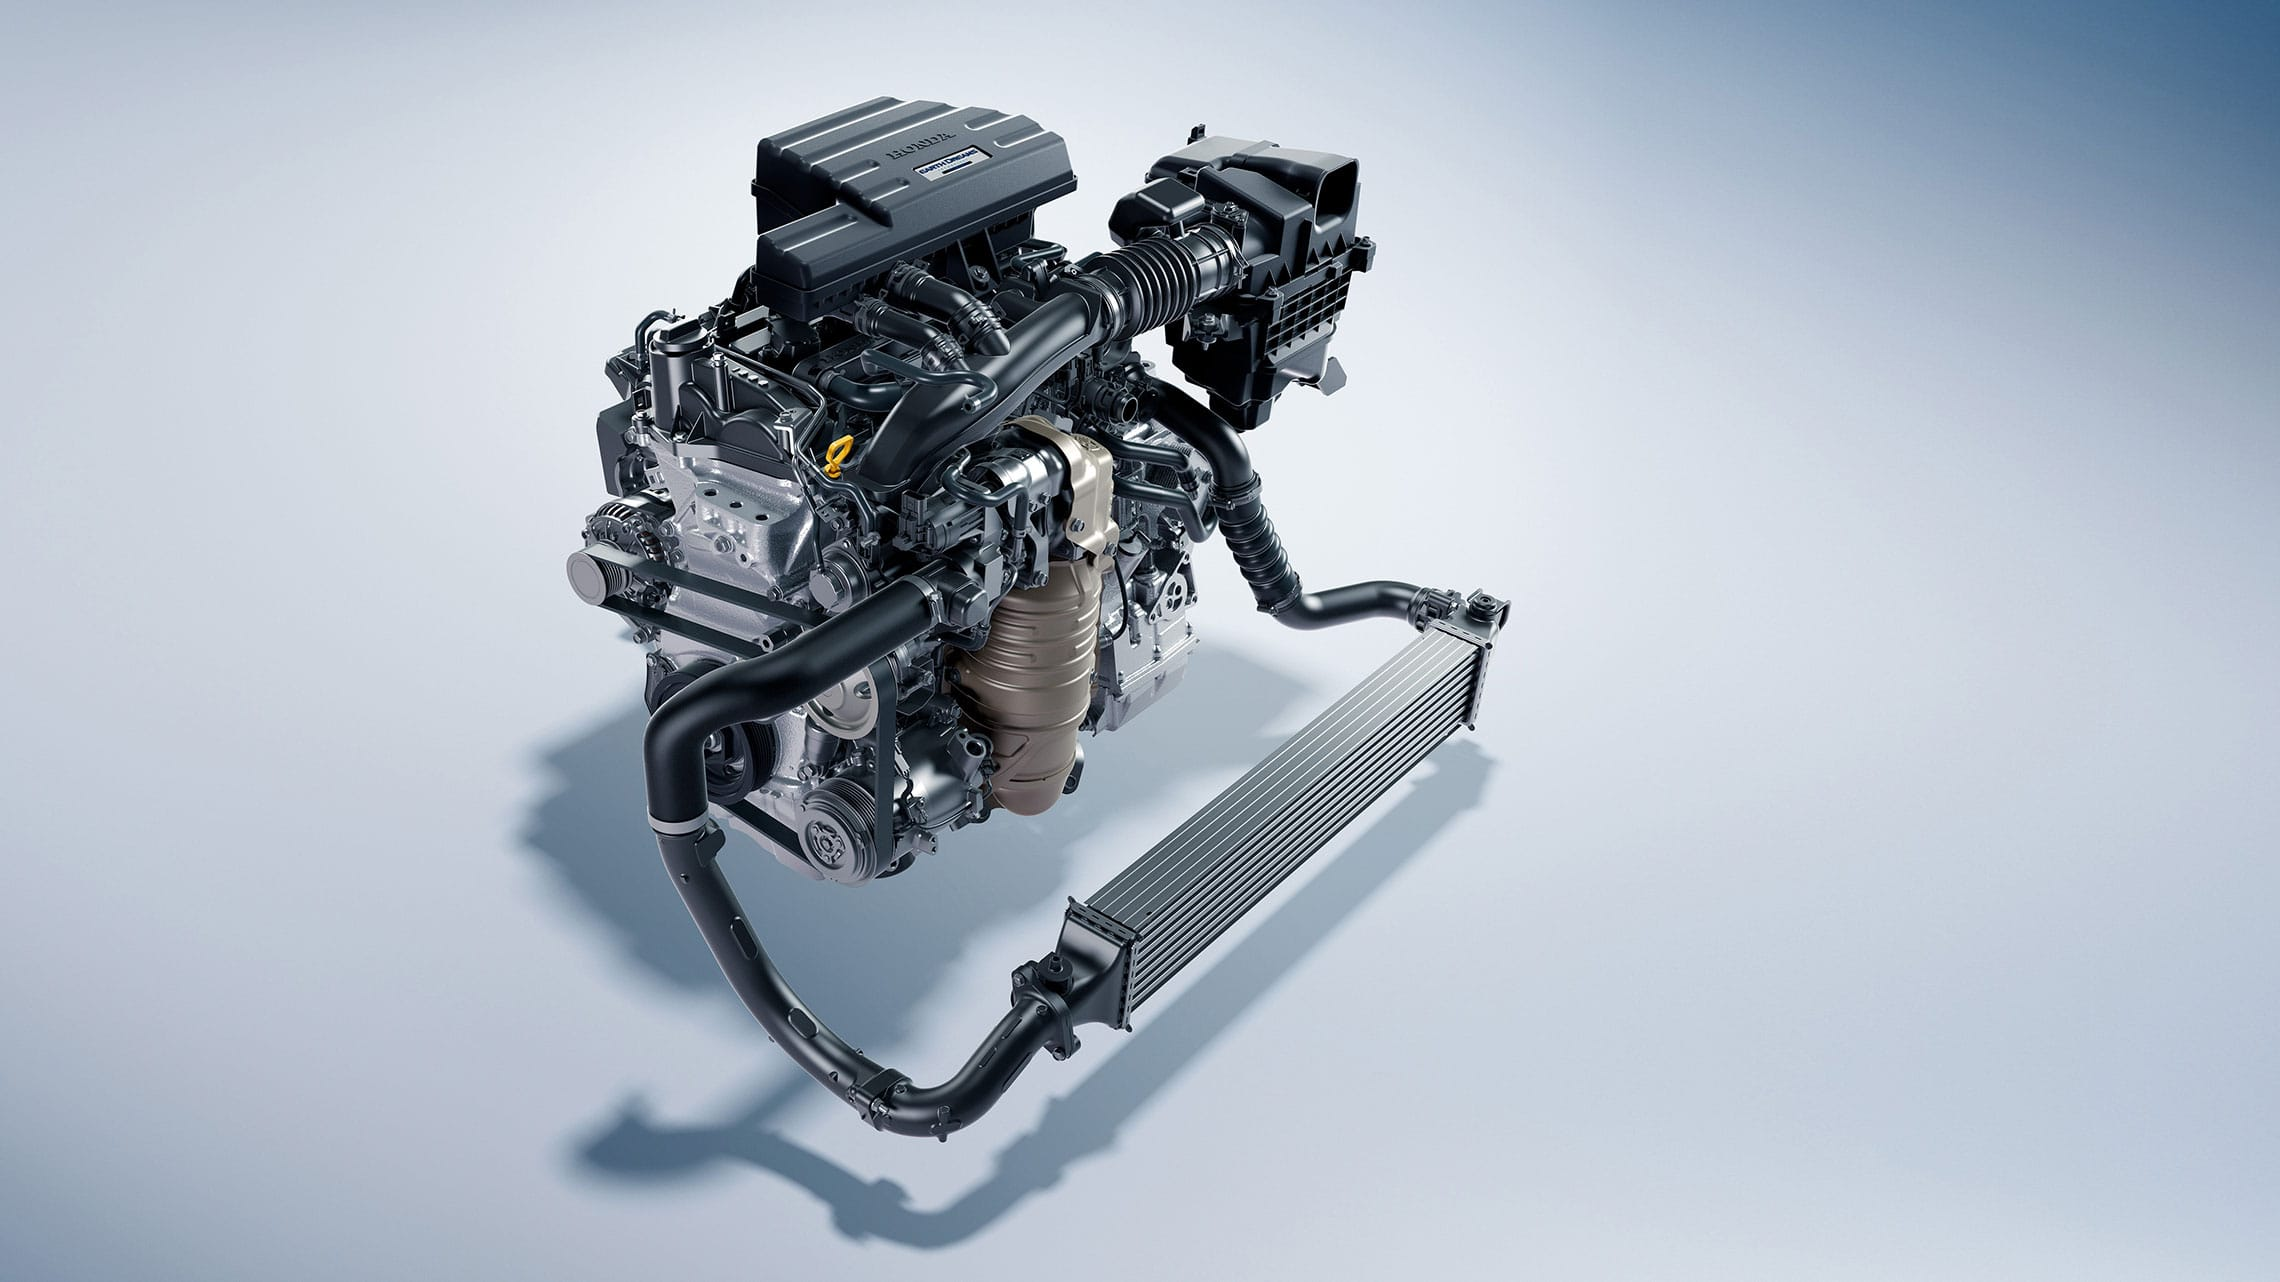 1.5-liter turbocharged engine detail in the 2021 Honda CR-V.